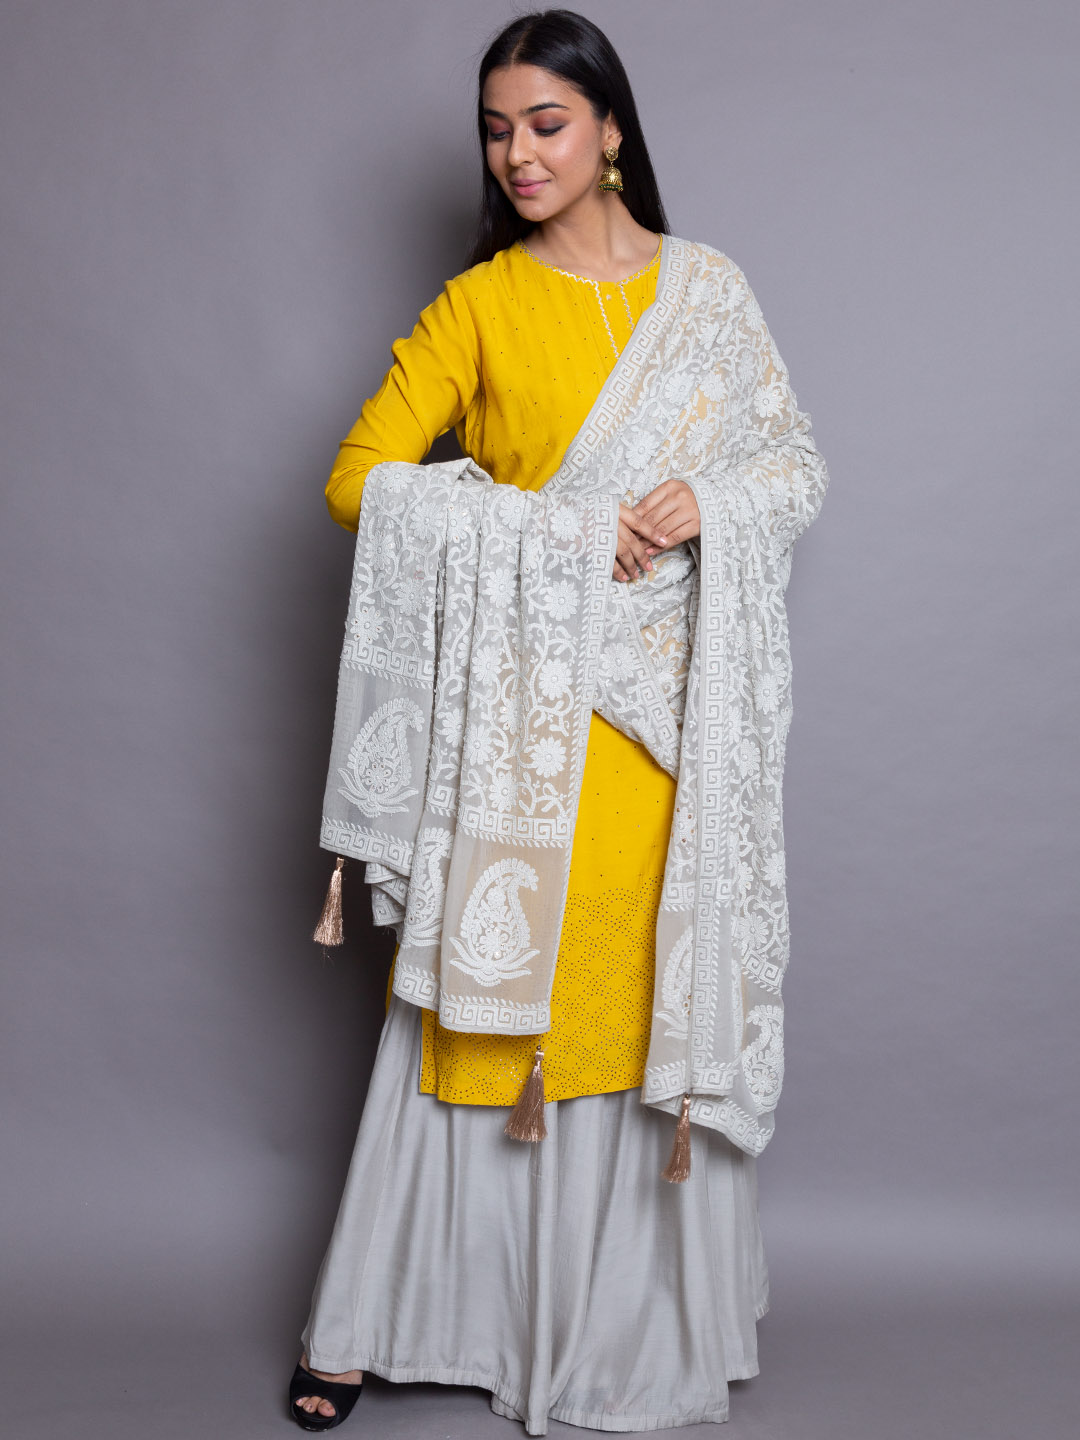 Musturd Yellow Suit With Embroidery Dupatta